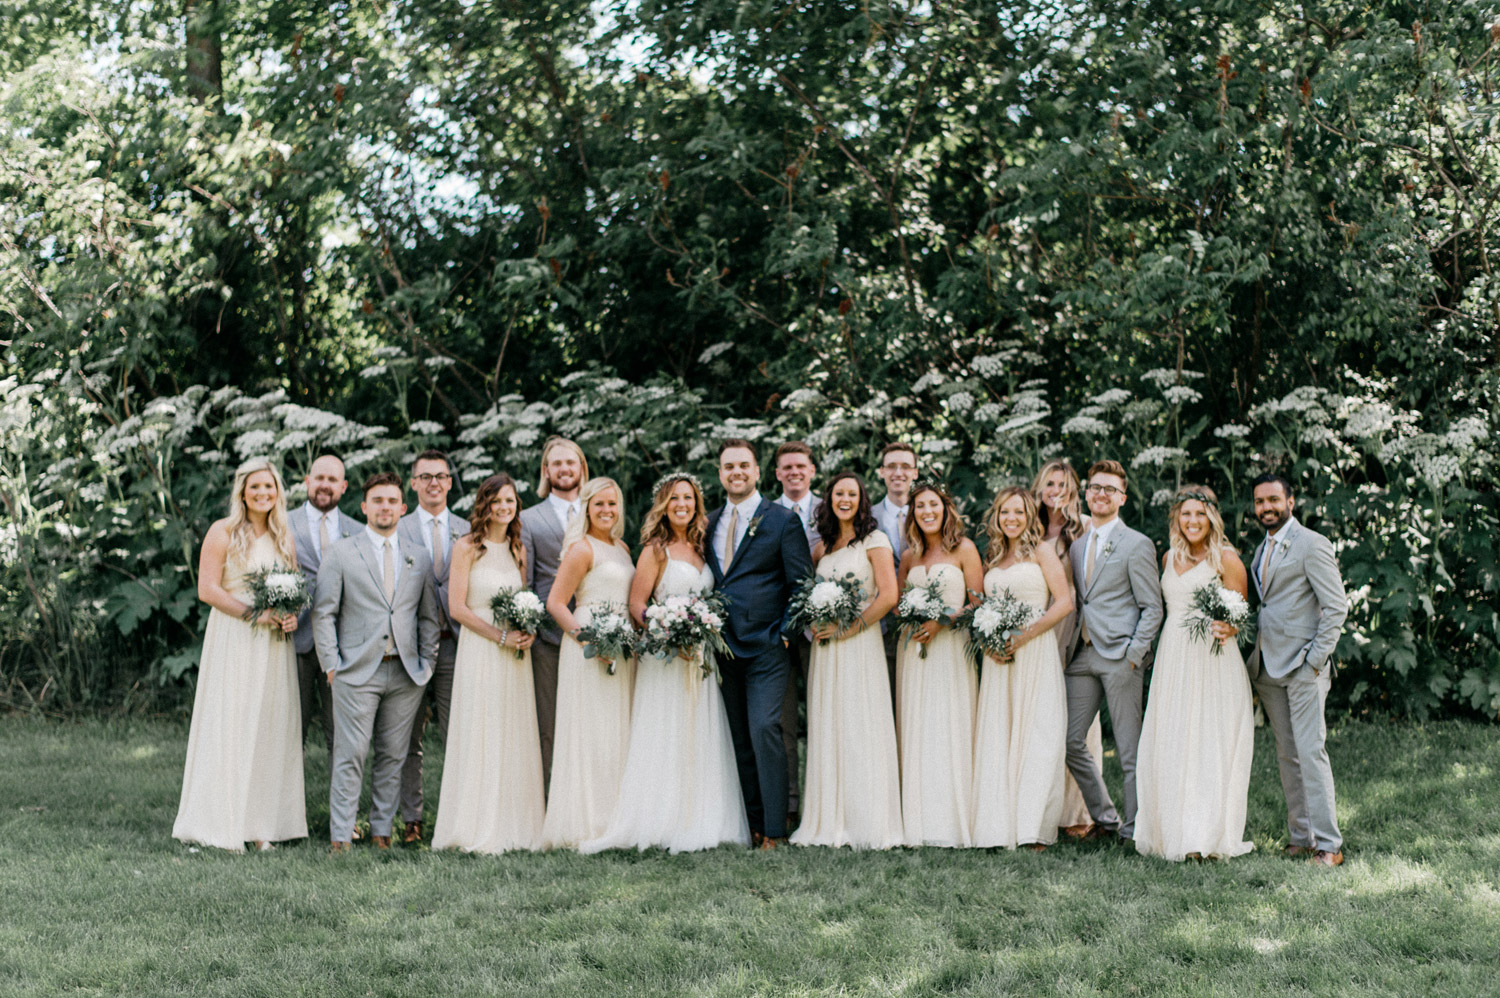 Wedding party images at minnetonka orchards by geneoh photography